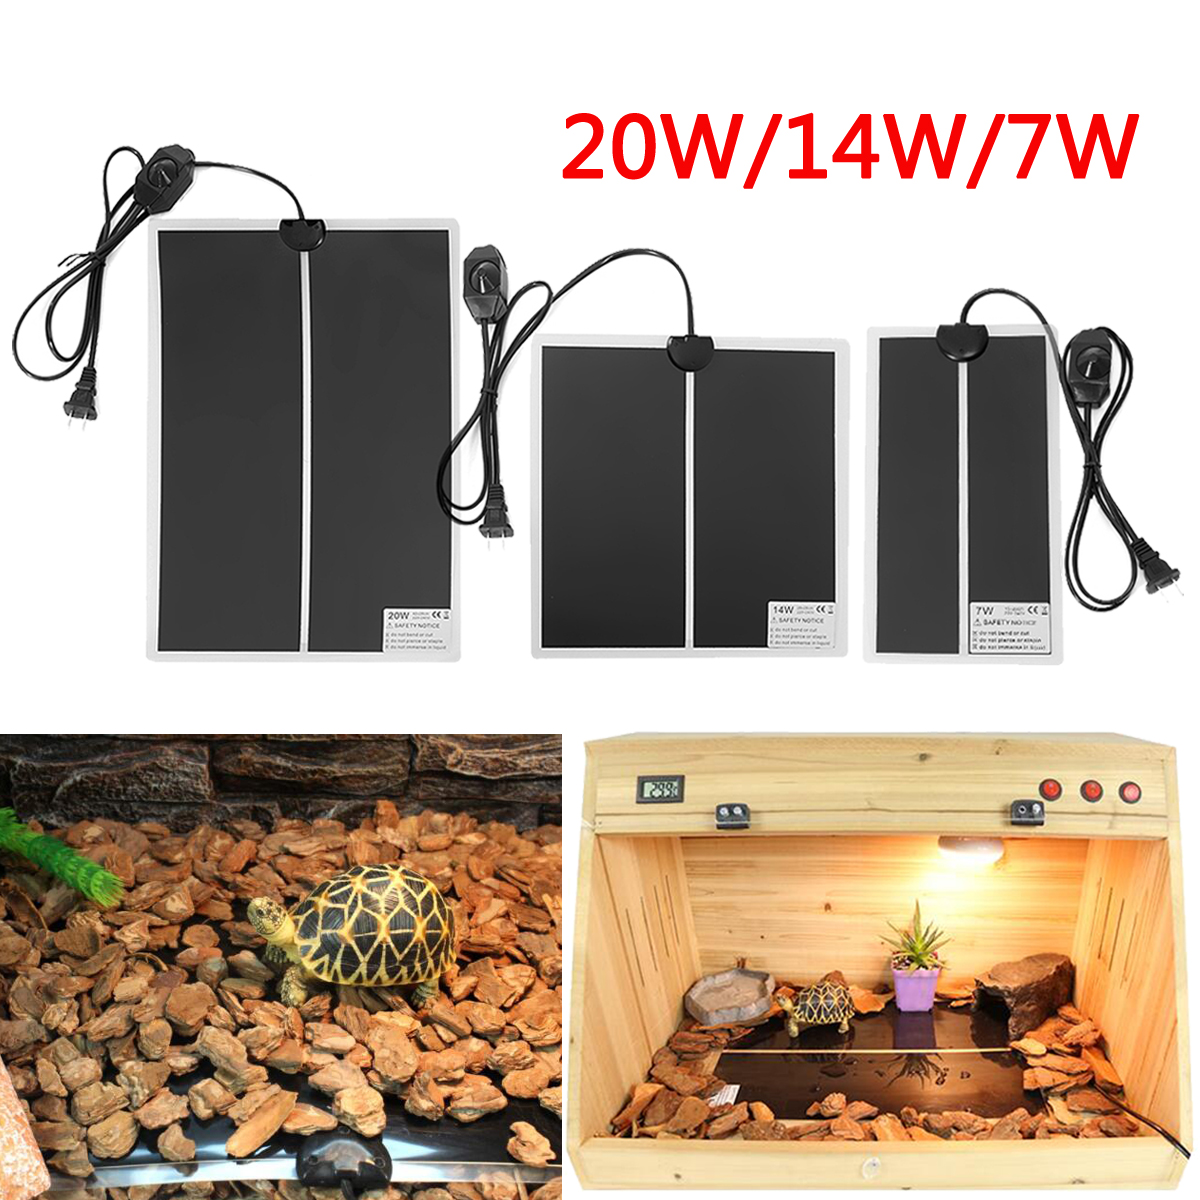 220V 7W / 14W / 20W Reptile Vivarium Heat Mats Heating Thermostat Snake Lizard Wearable Electronic Heating Mats Pet Heating Pad220V 7W / 14W / 20W Reptile Vivarium Heat Mats Heating Thermostat Snake Lizard Wearable Electronic Heating Mats Pet Heating Pad